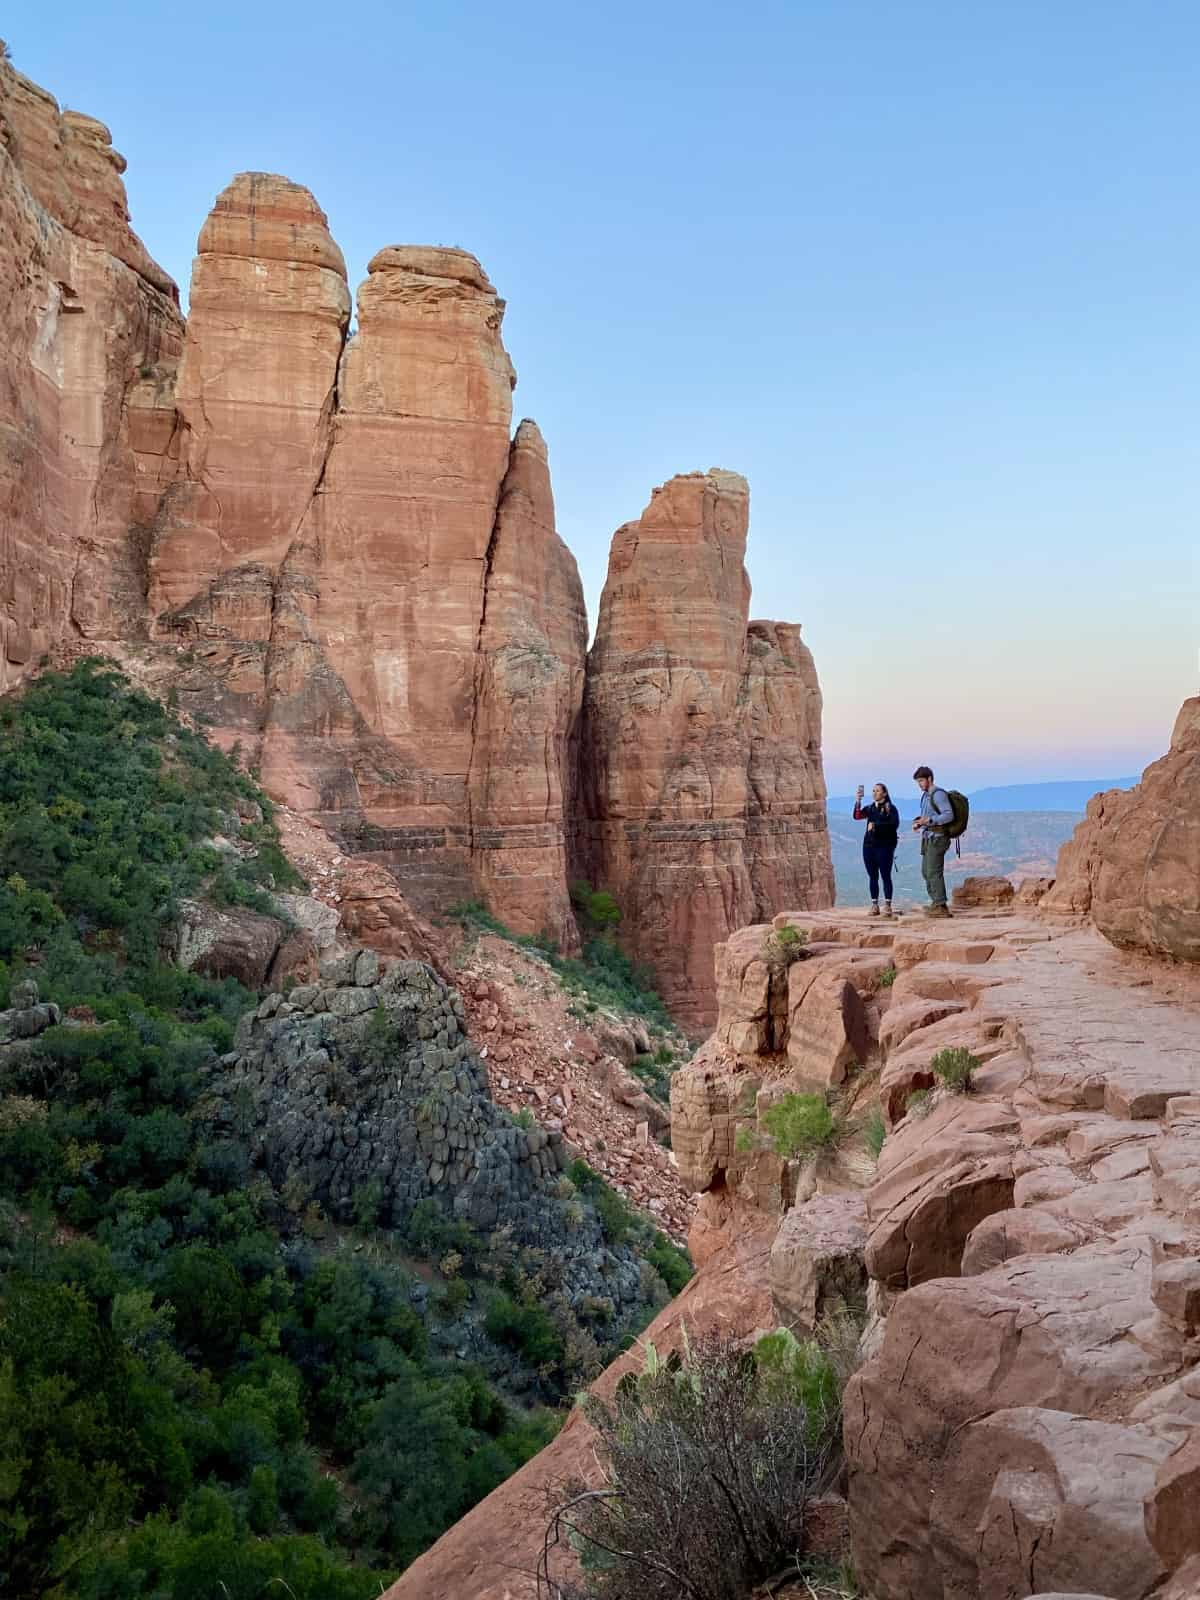 What It's Like Hiking Sedona's Cathedral Rock at Sunrise | This iconic & challenging hike is stunning any time of day, but sunrise is a particularly magical experience. How to determine if Cathedral Rock Sedona is the right hike for you (heights, steepness, etc), & tips for making the most of it. #cathedralrock #sedona #hiking #sunrisehike